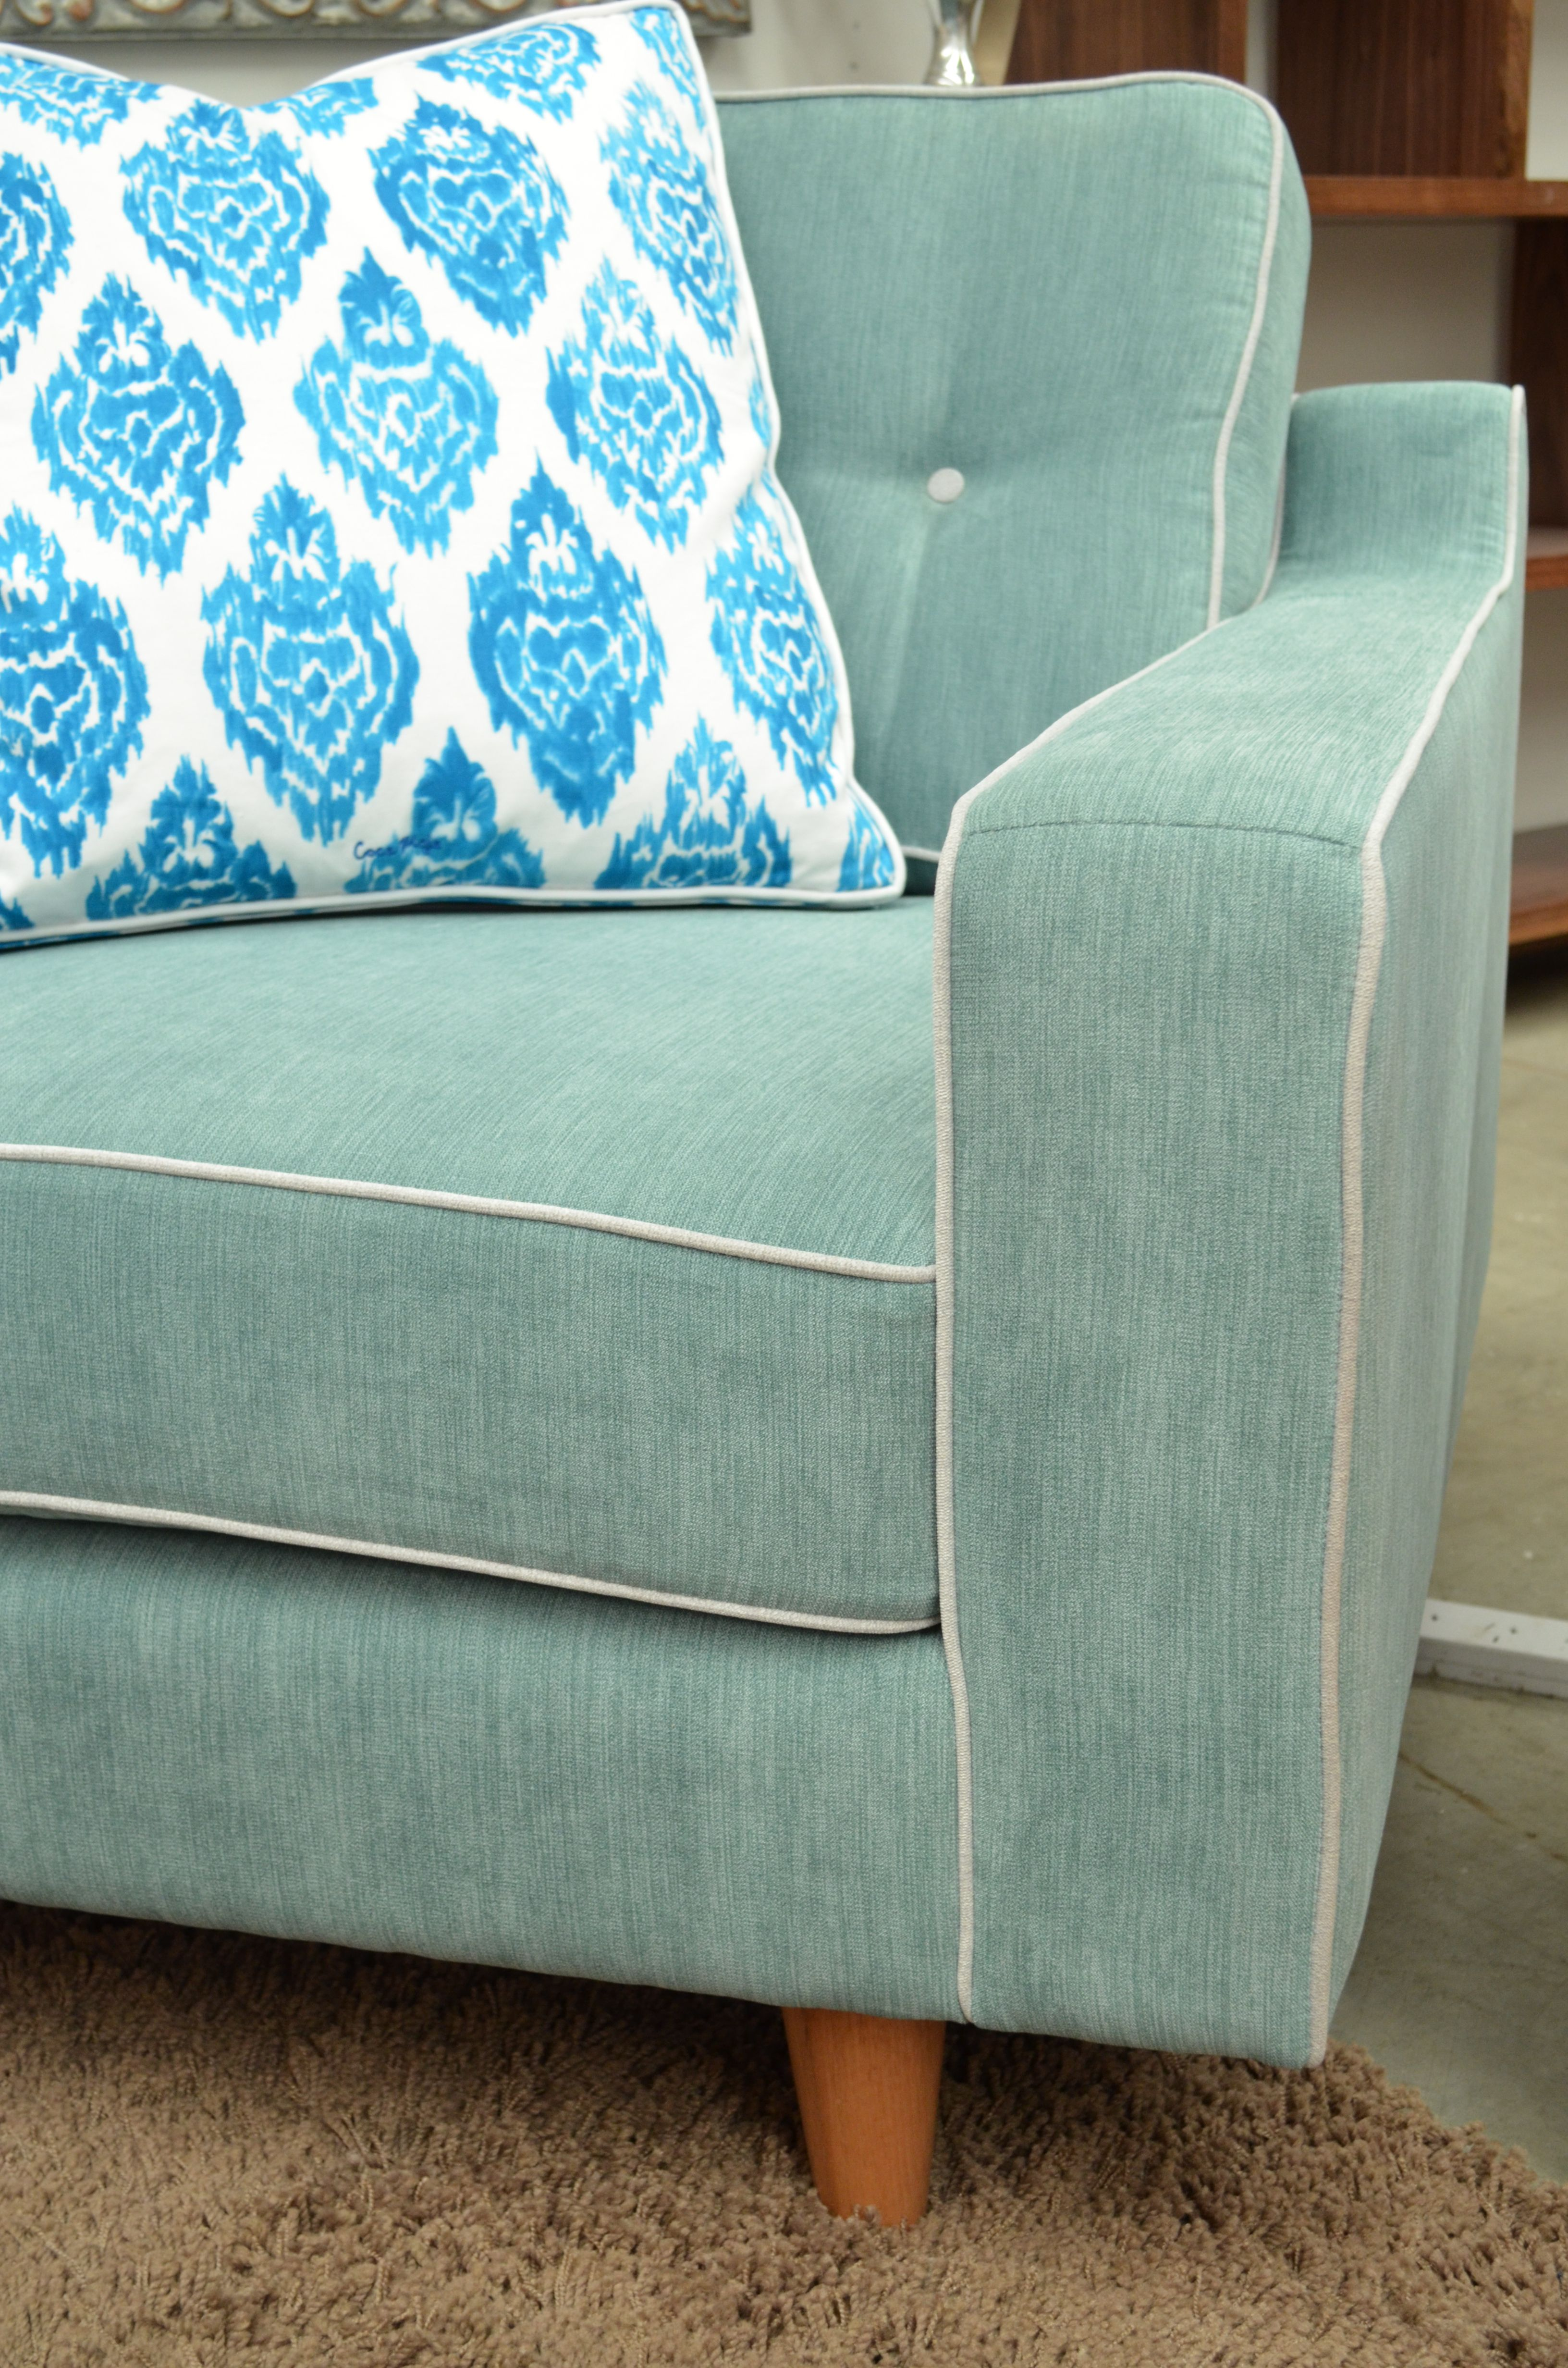 Cool Blue Neutral Style The General Furniture And Homewares Osborne Park